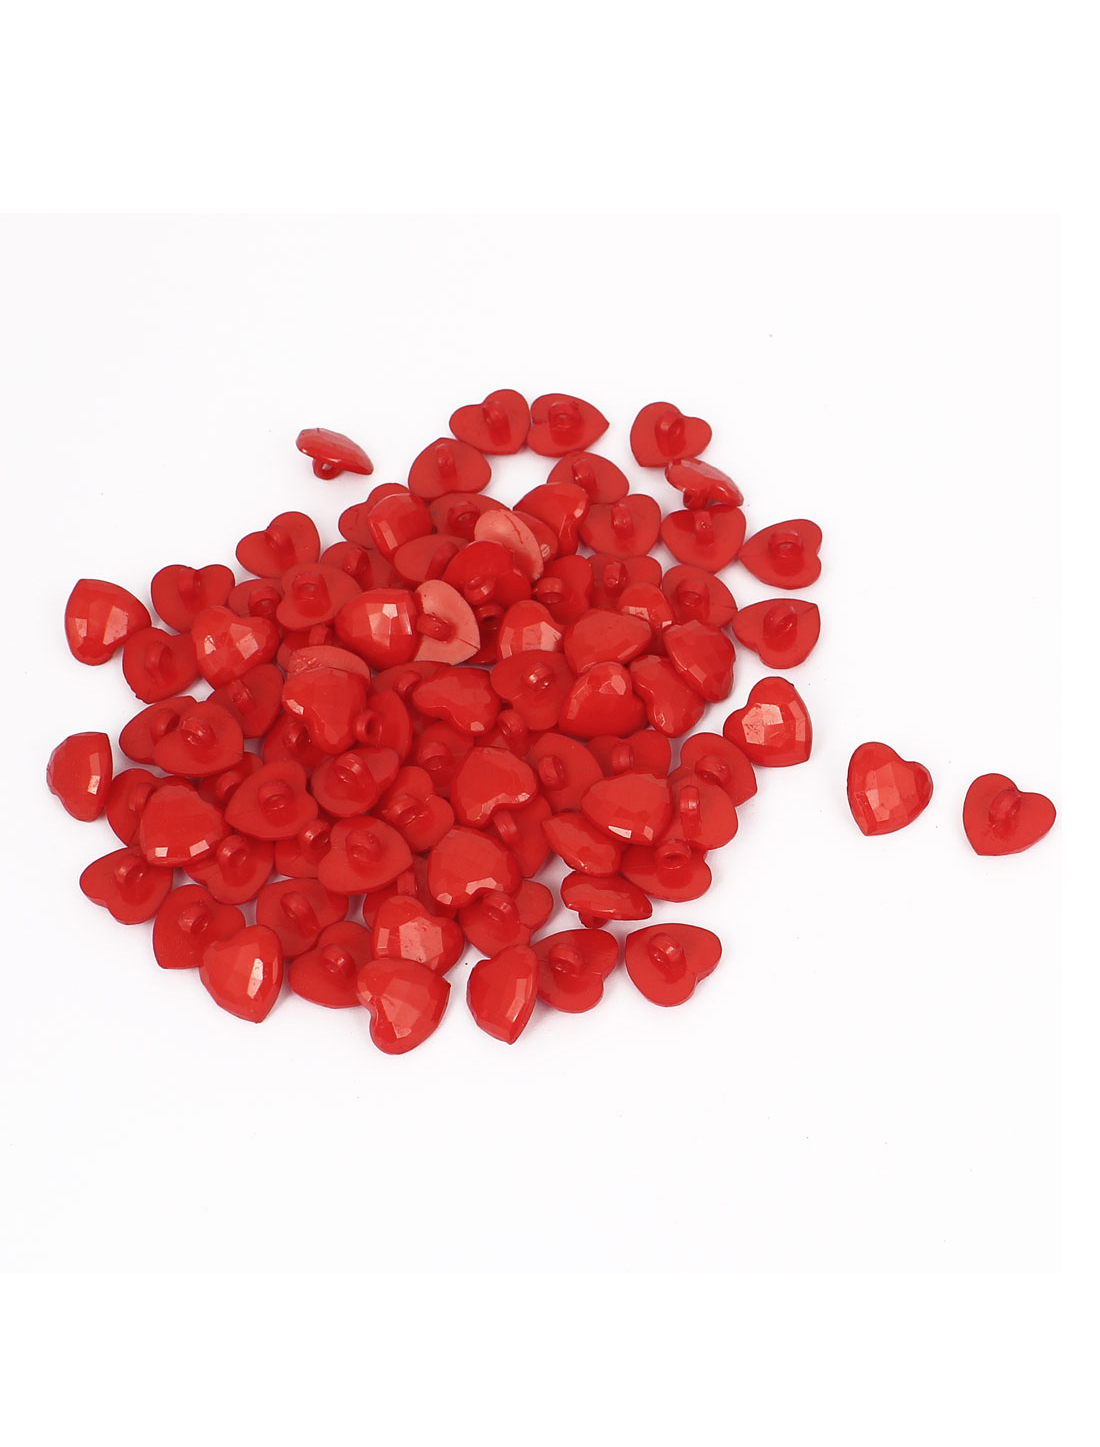 14mm Width 1 Hole Plastic Heart Shape Clothing Button Fastener Red 100pcs